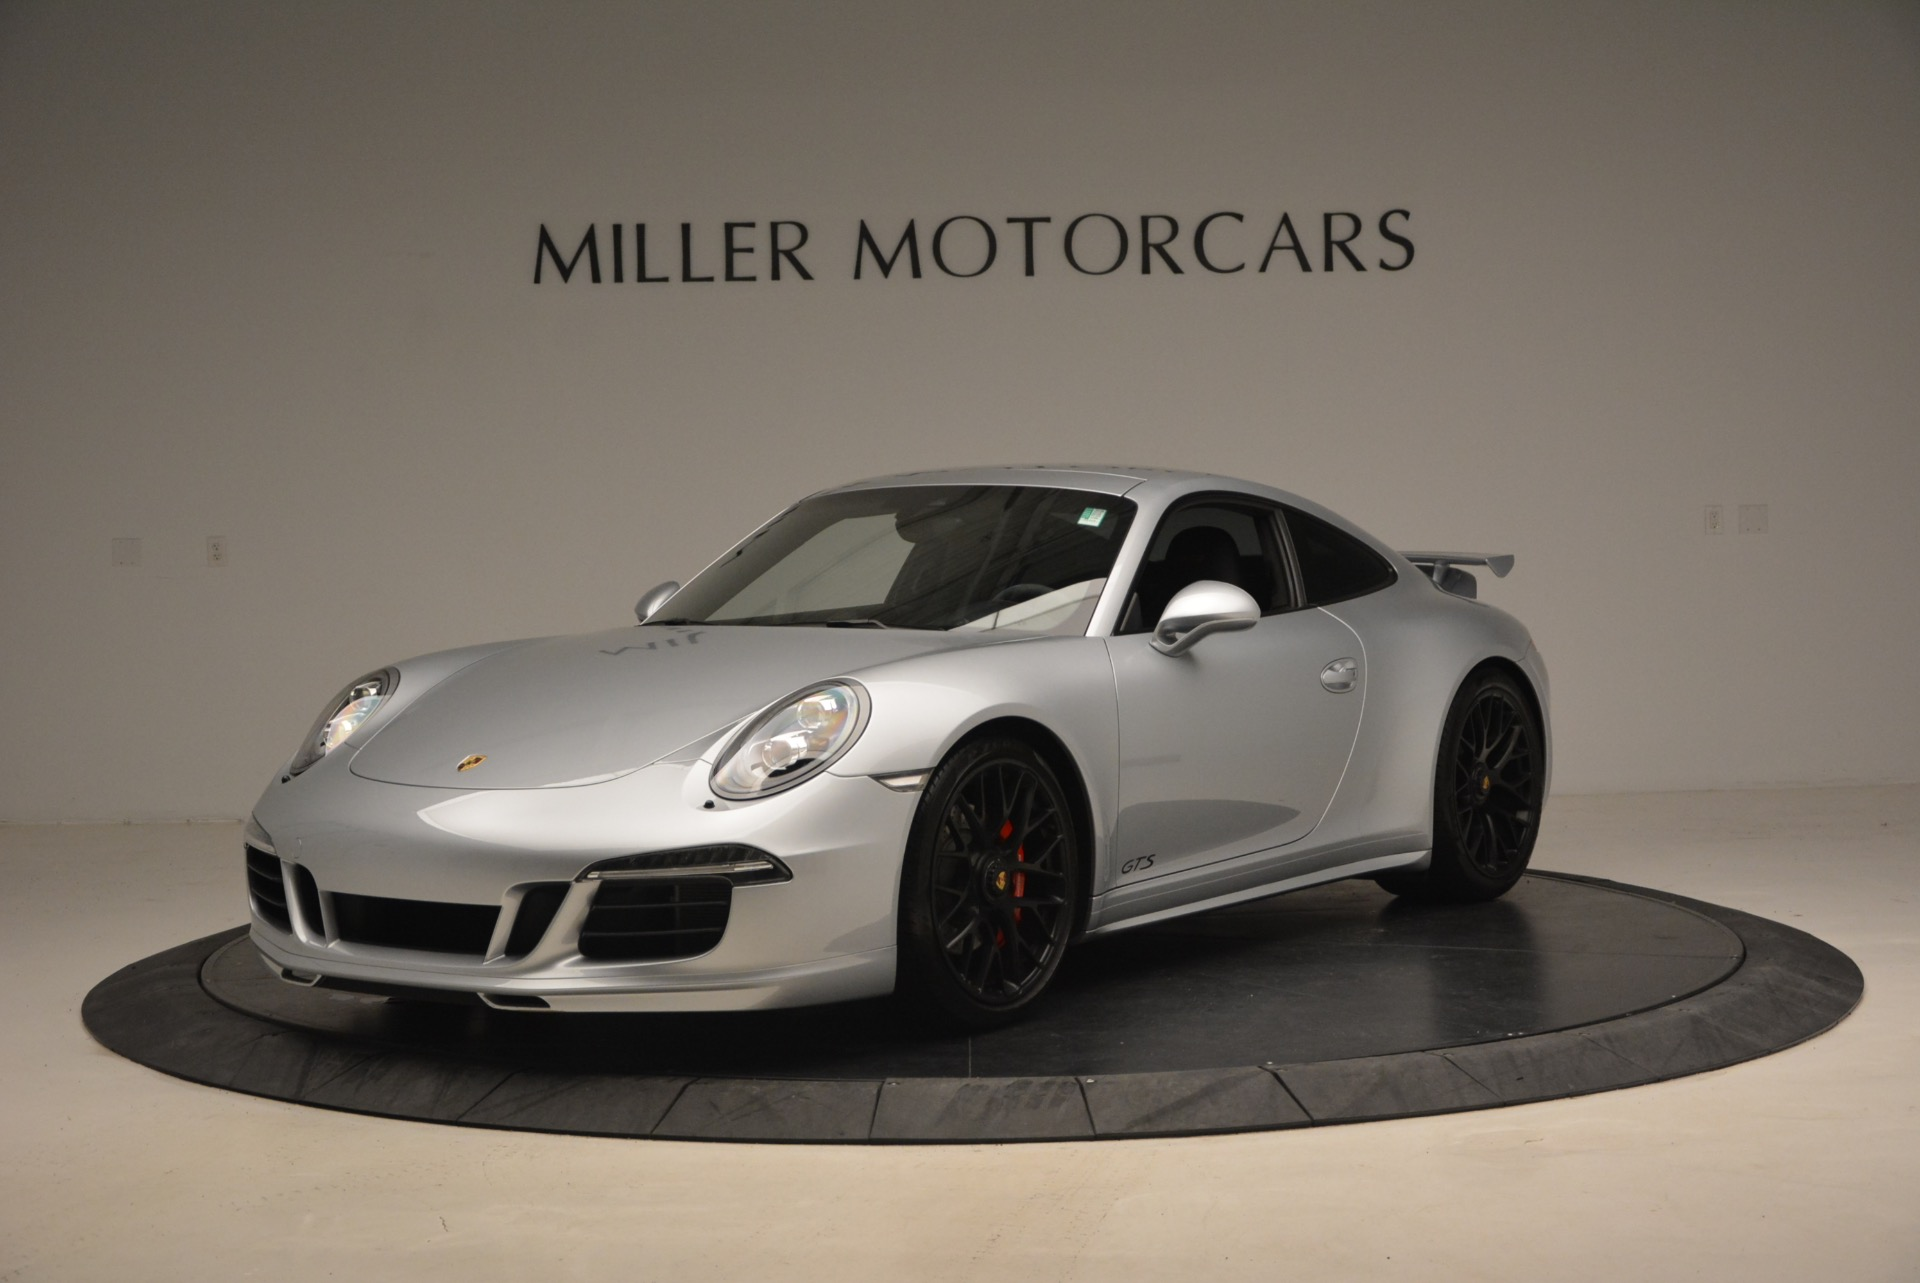 Used 2015 Porsche 911 Carrera Gts For Sale Miller